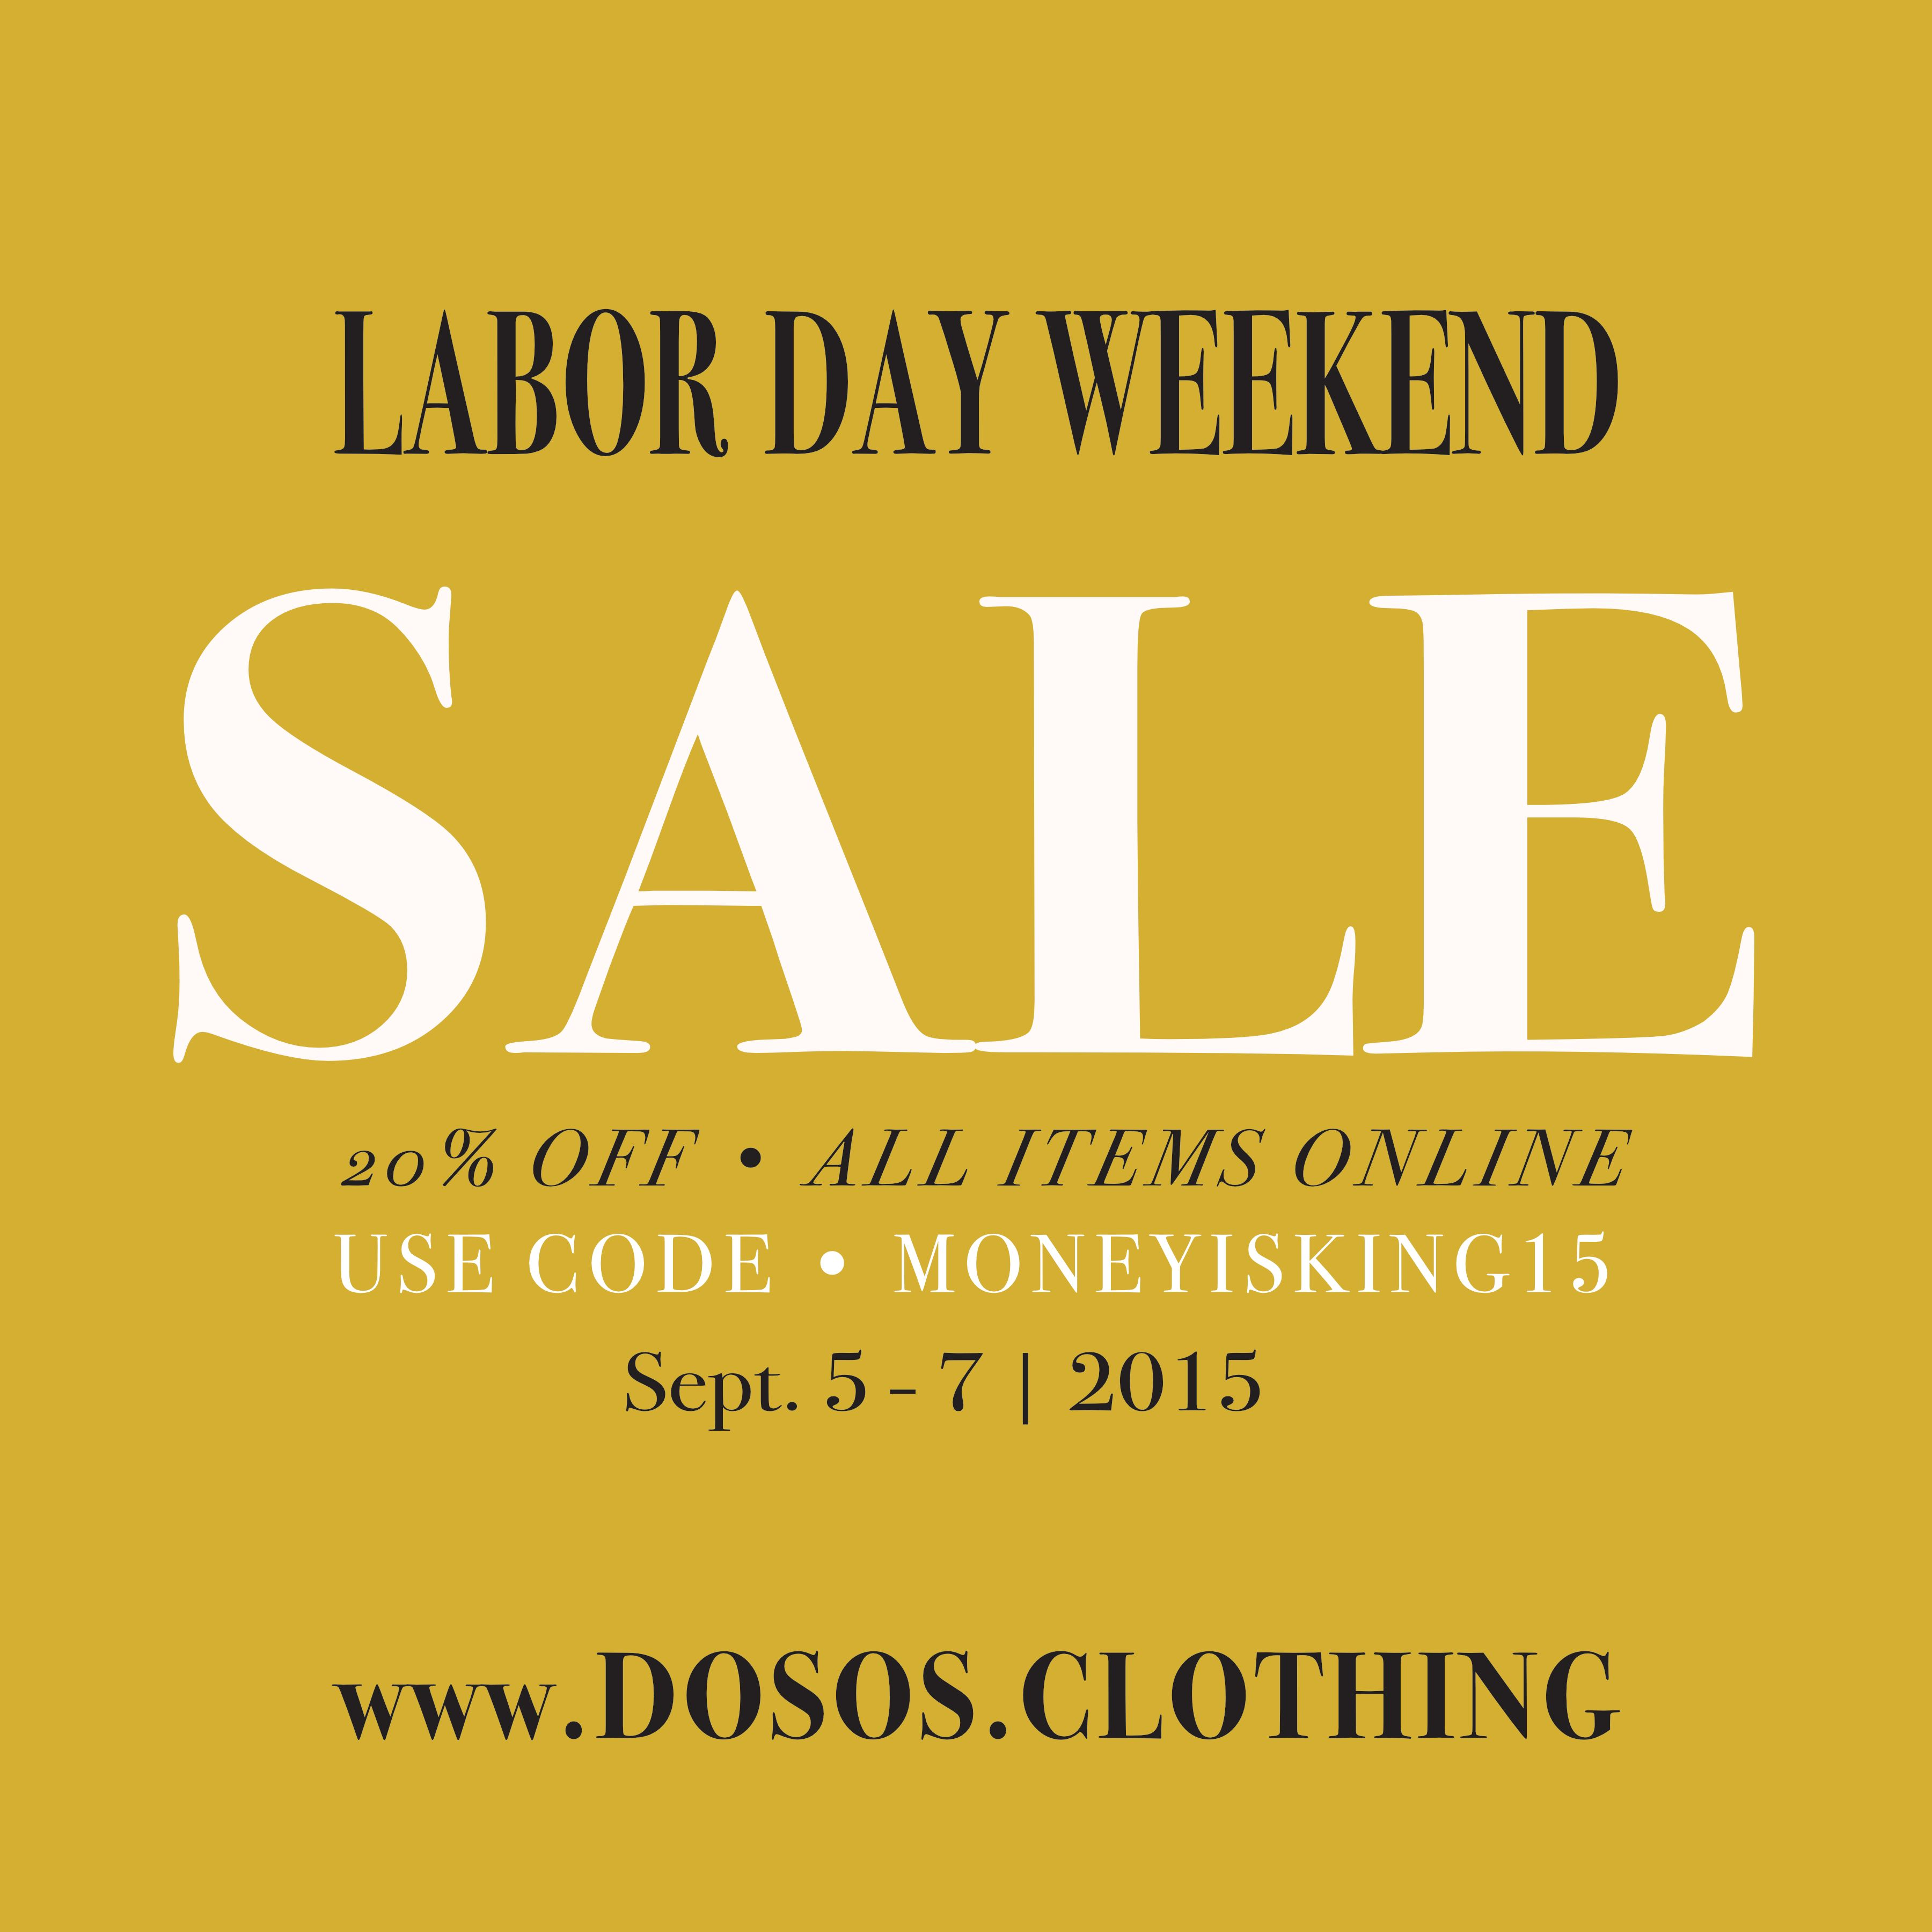 Labor Day Weekend SALE  20% Off • All Items Online Use Code: MoneyIsKing15  Promo Ends Sept. 8, 2015 (Midnight)